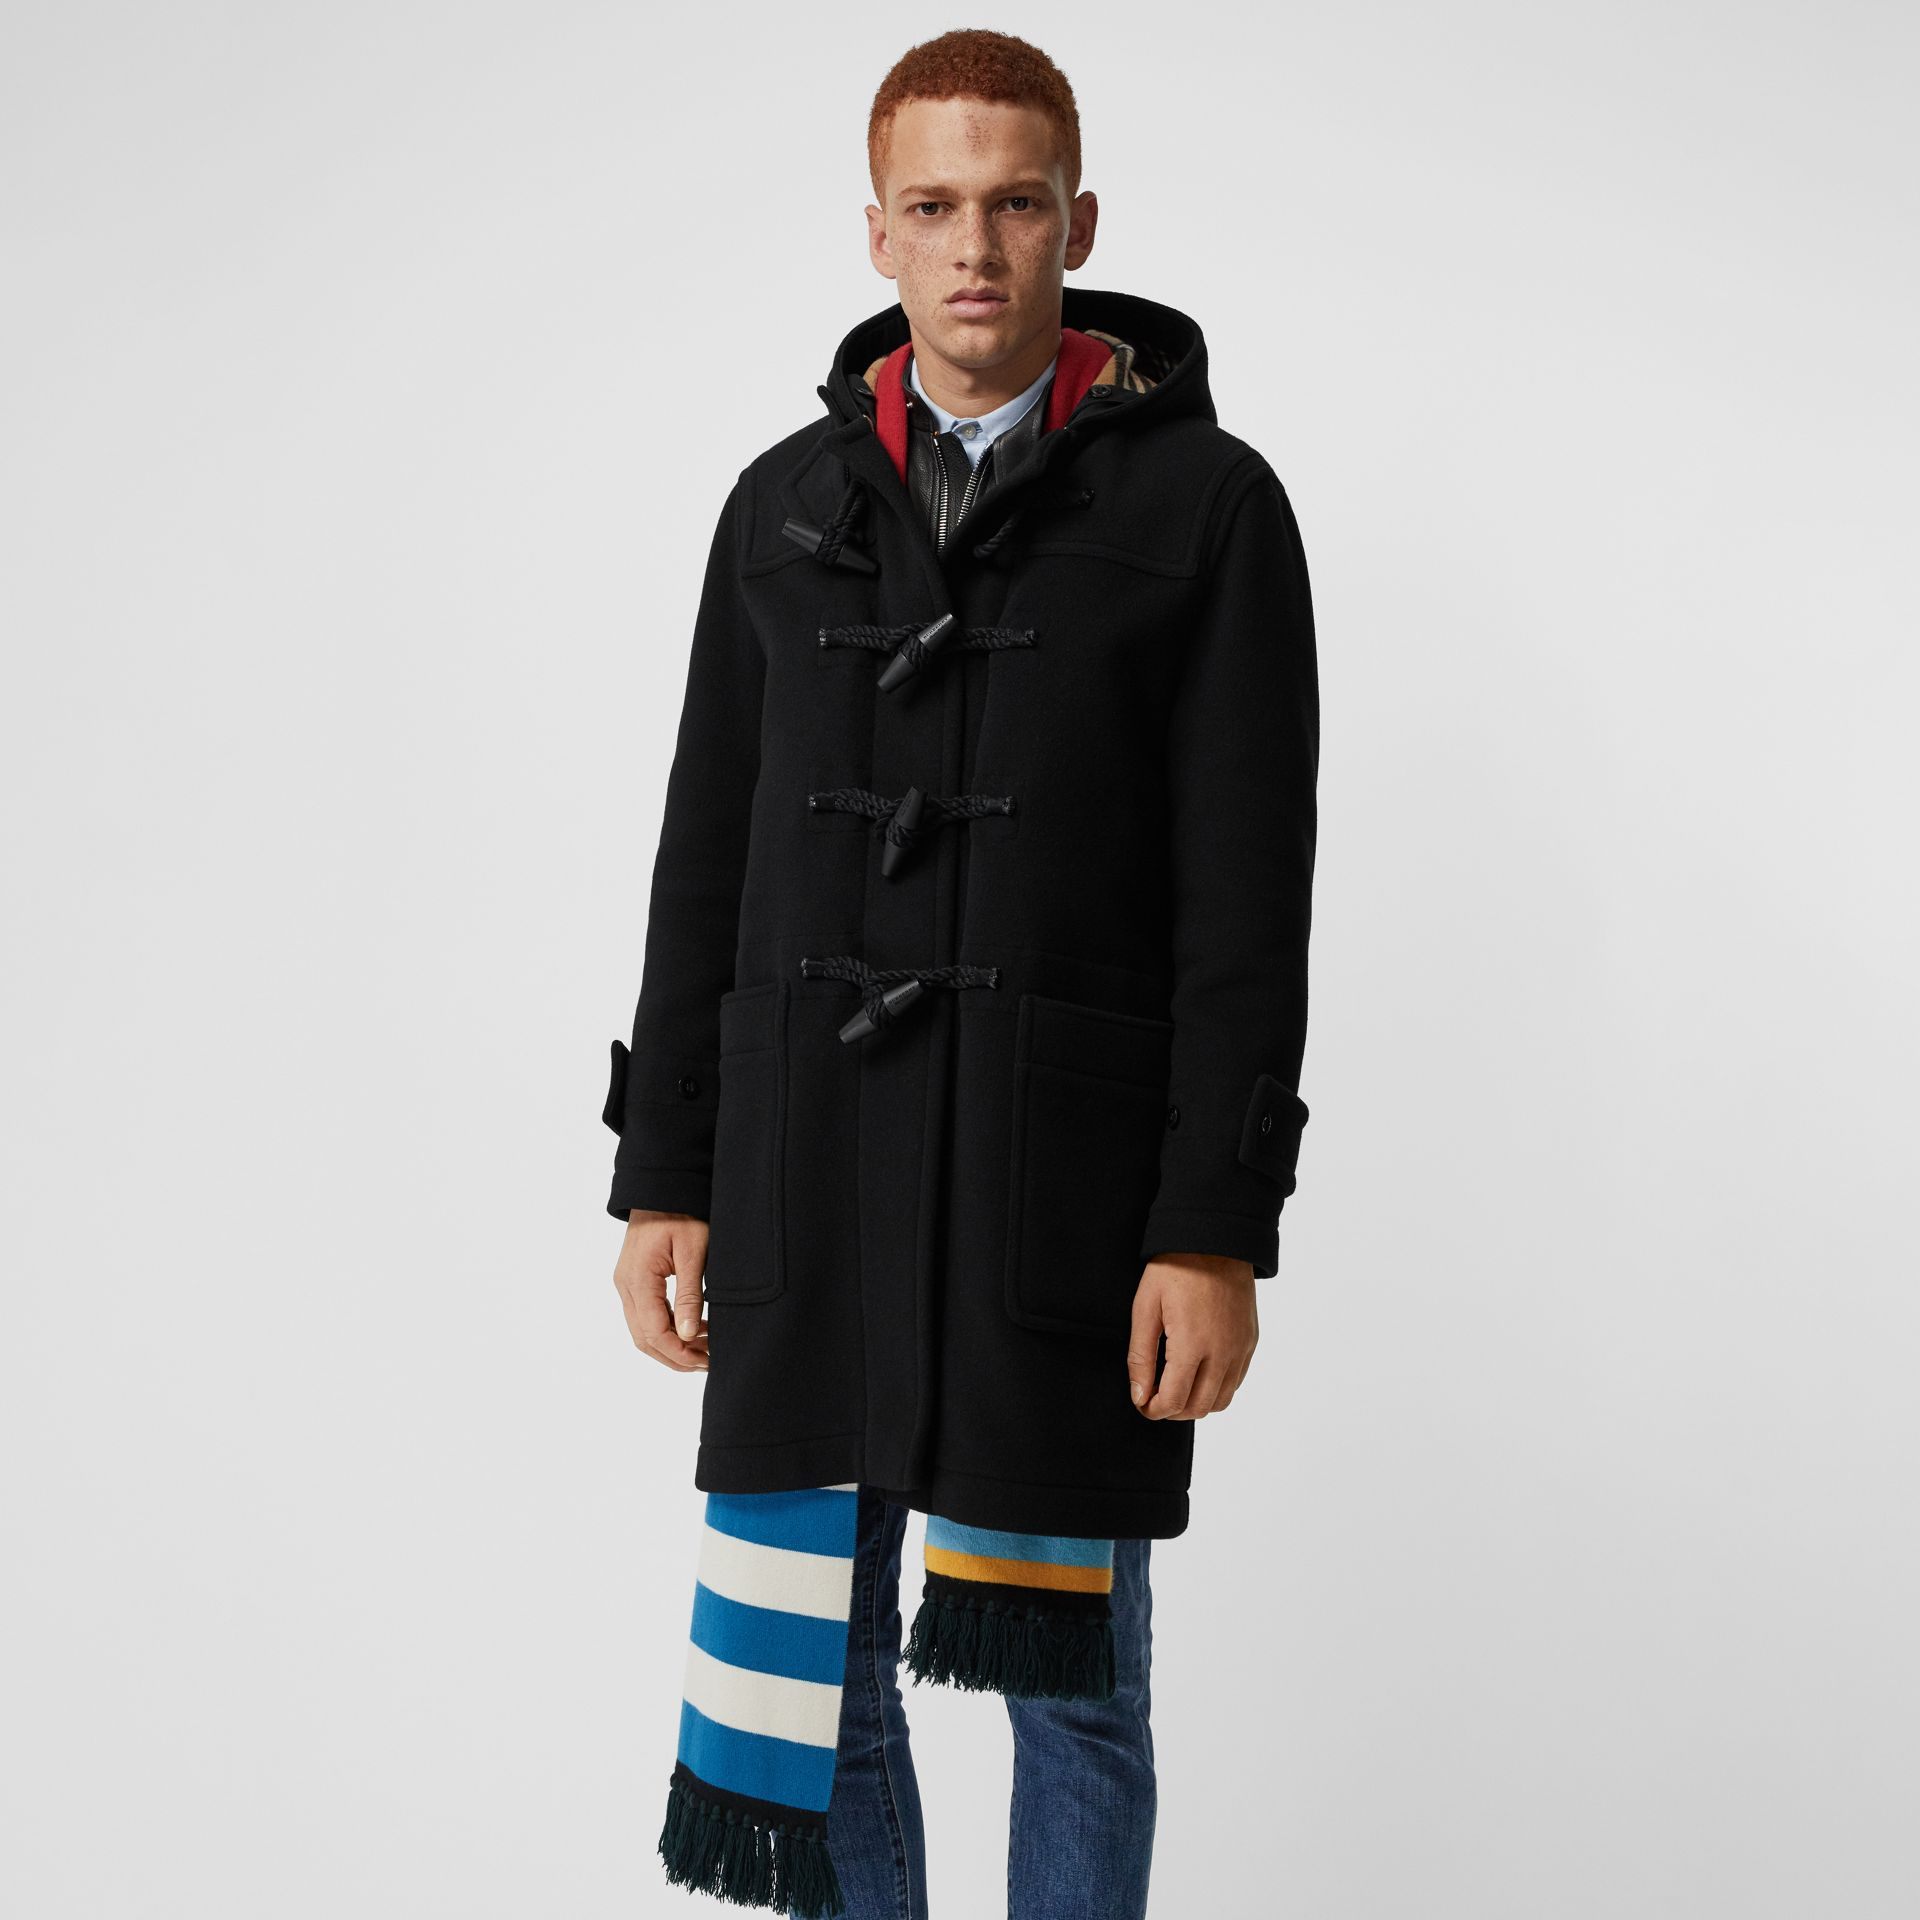 Vintage Check Detail Wool Blend Hooded Duffle Coat in Black - Men | Burberry Australia - gallery image 5